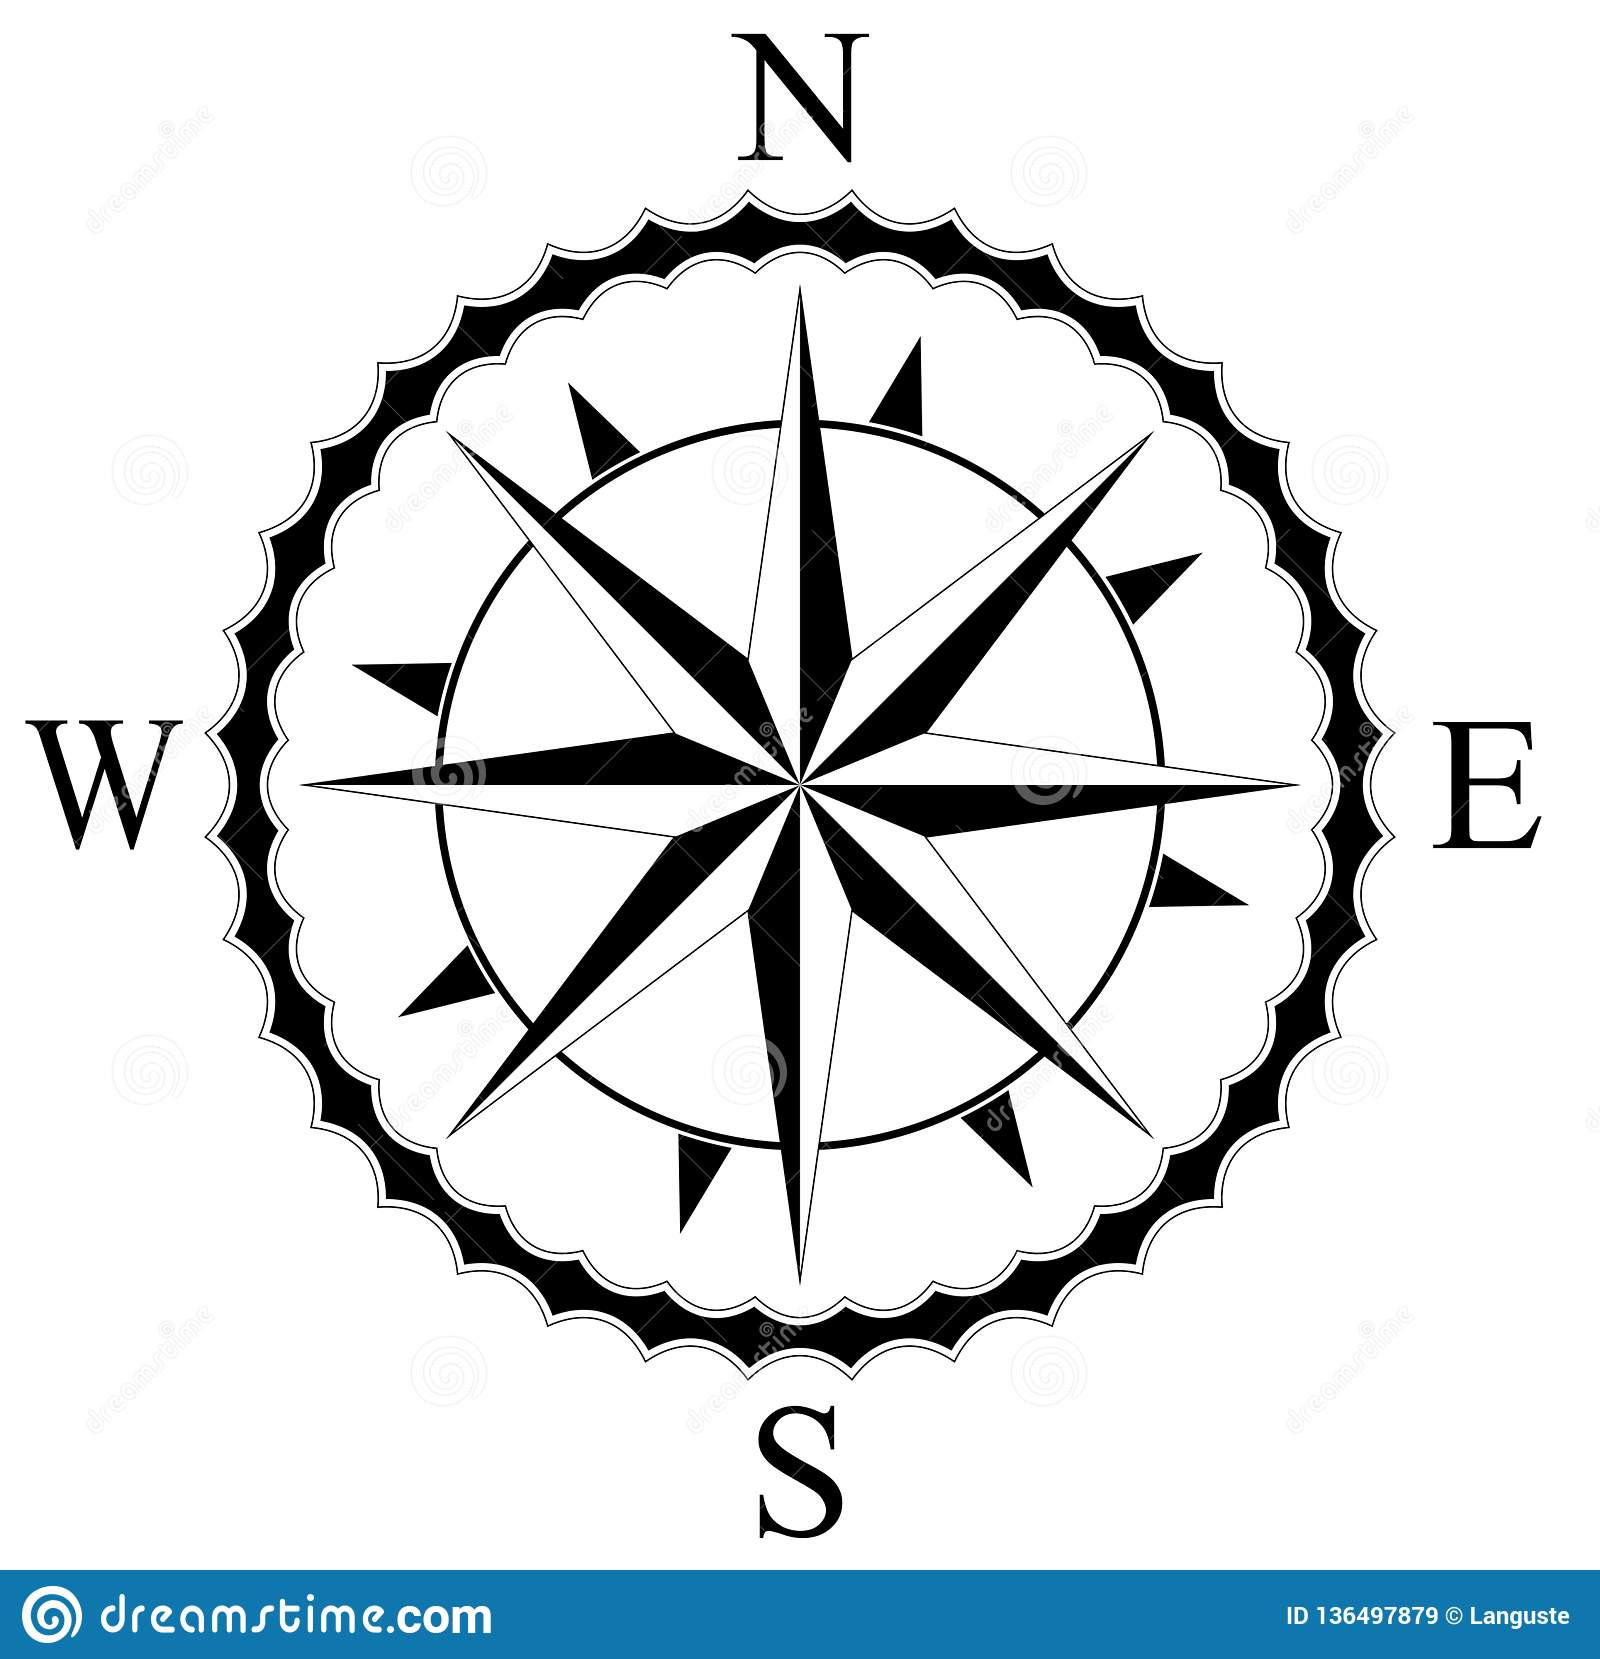 Compass Rose Worksheets Middle School Pass Rose Directions Worksheets